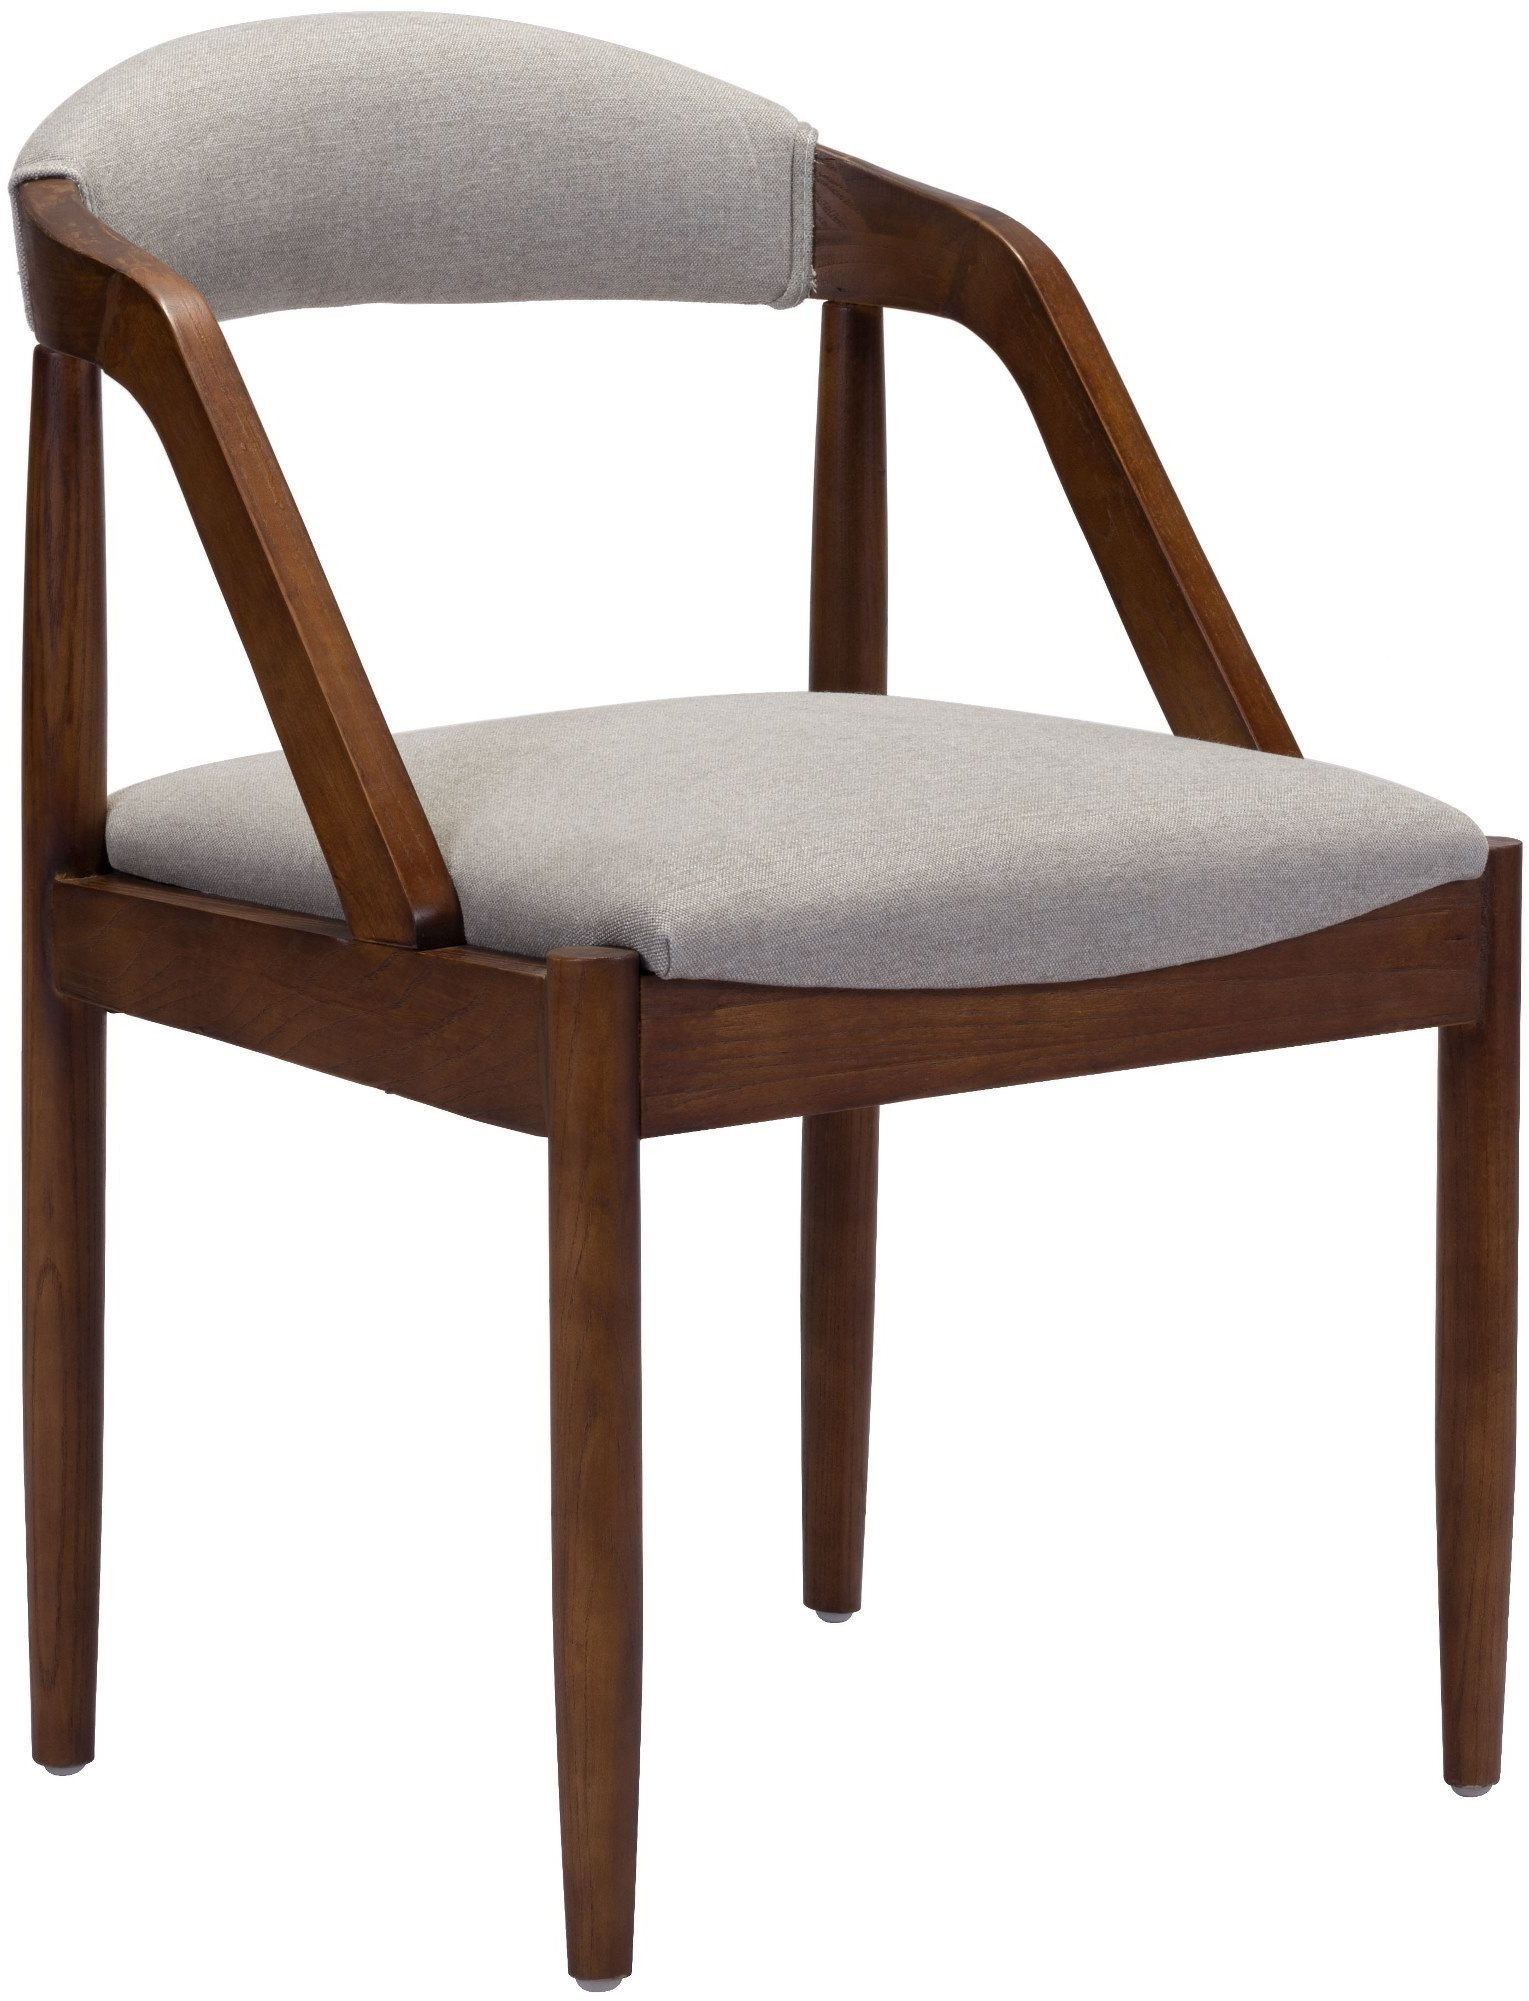 Jefferson Light Gray Dining Chair Set Of 2 From Zuo